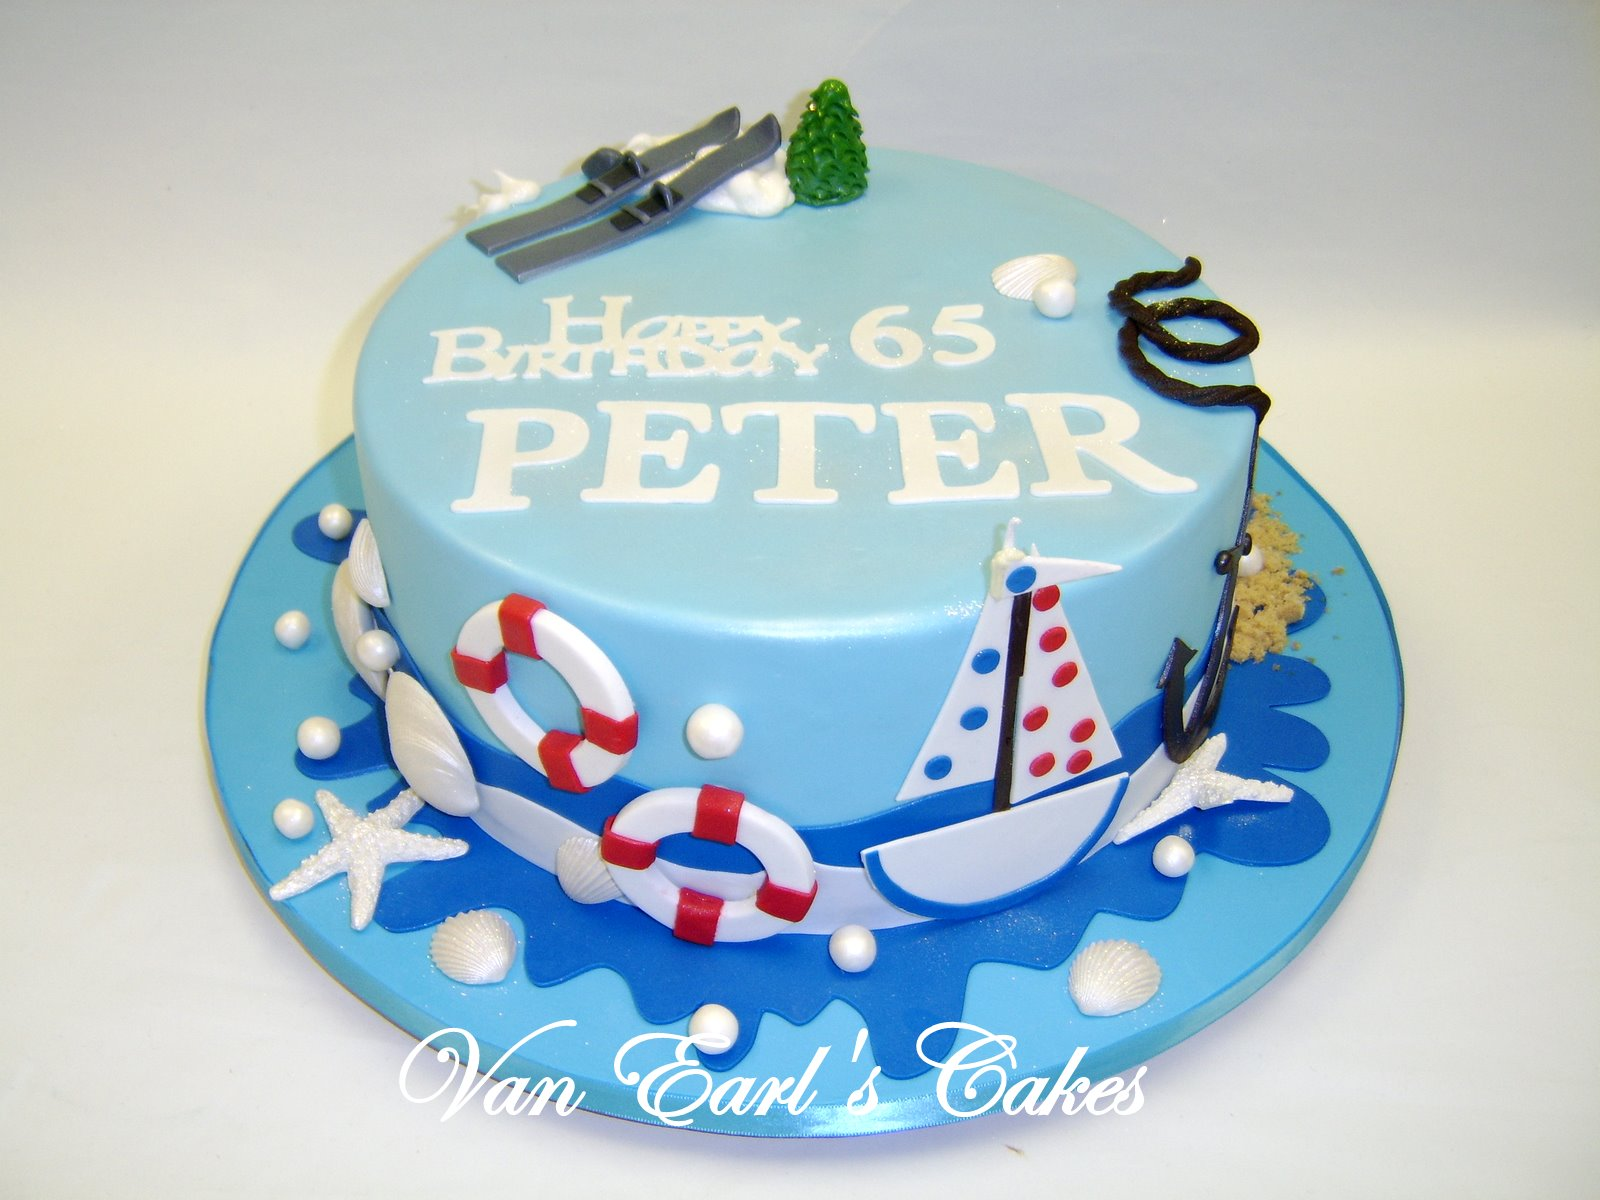 Van Earls Cakes Sailing and Skiing Birthday Cake